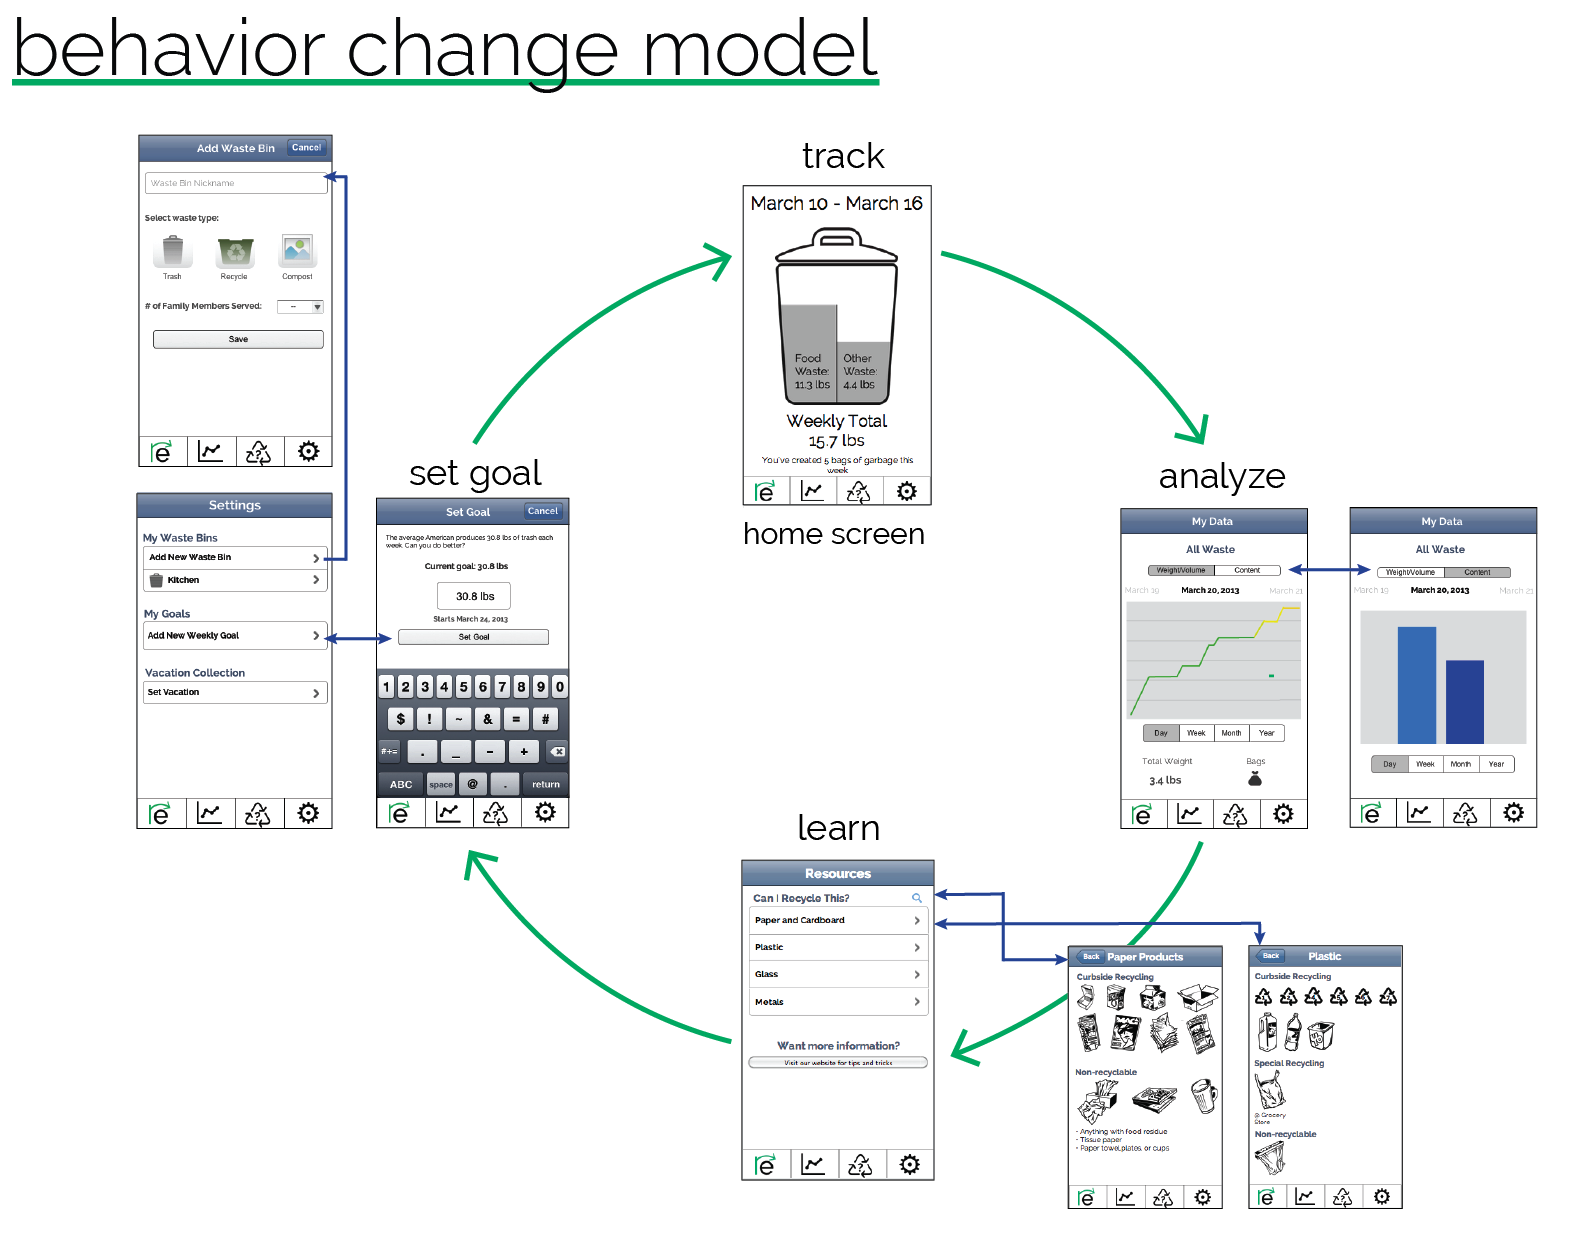 Behavior Change Model